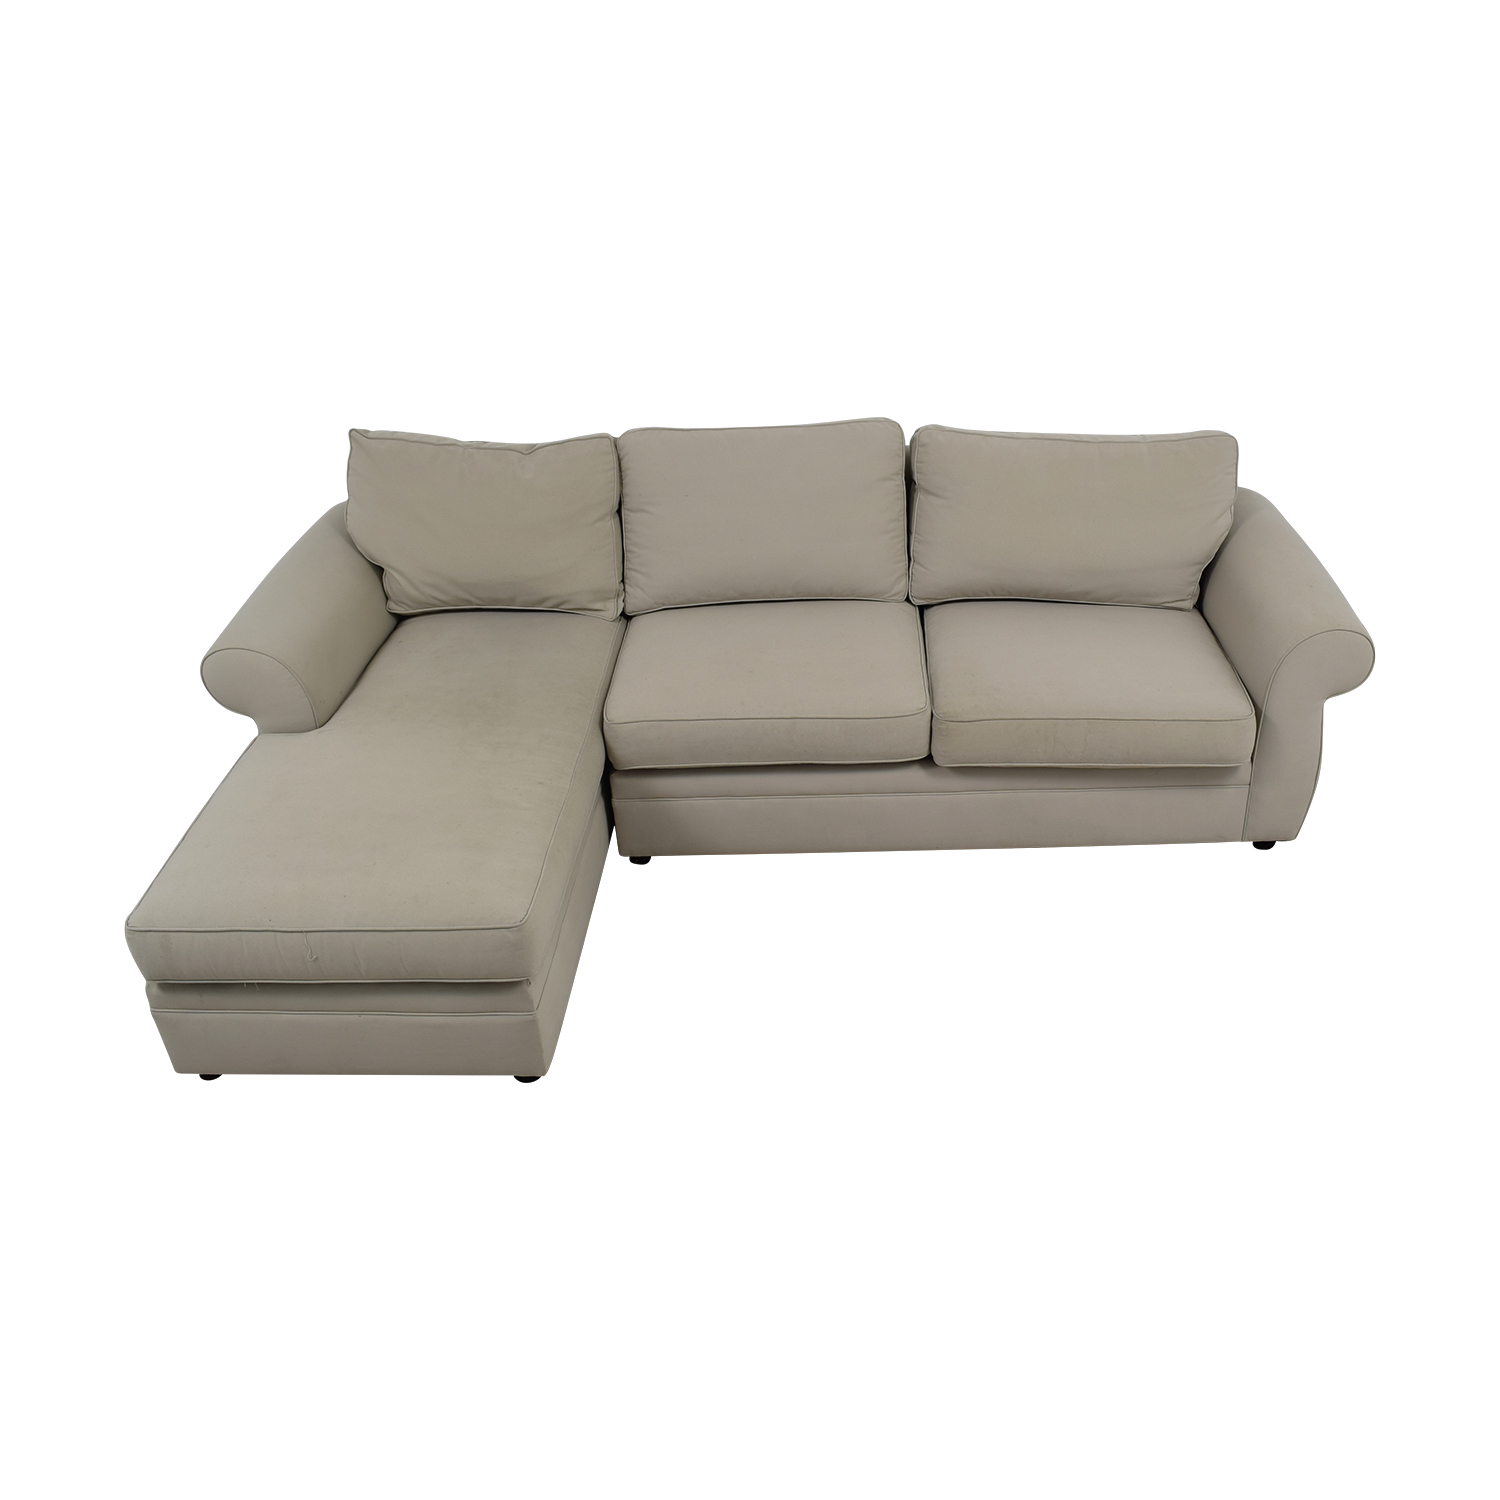 pottery barn chaise sofa sectional modern with metal legs sectionals used for sale